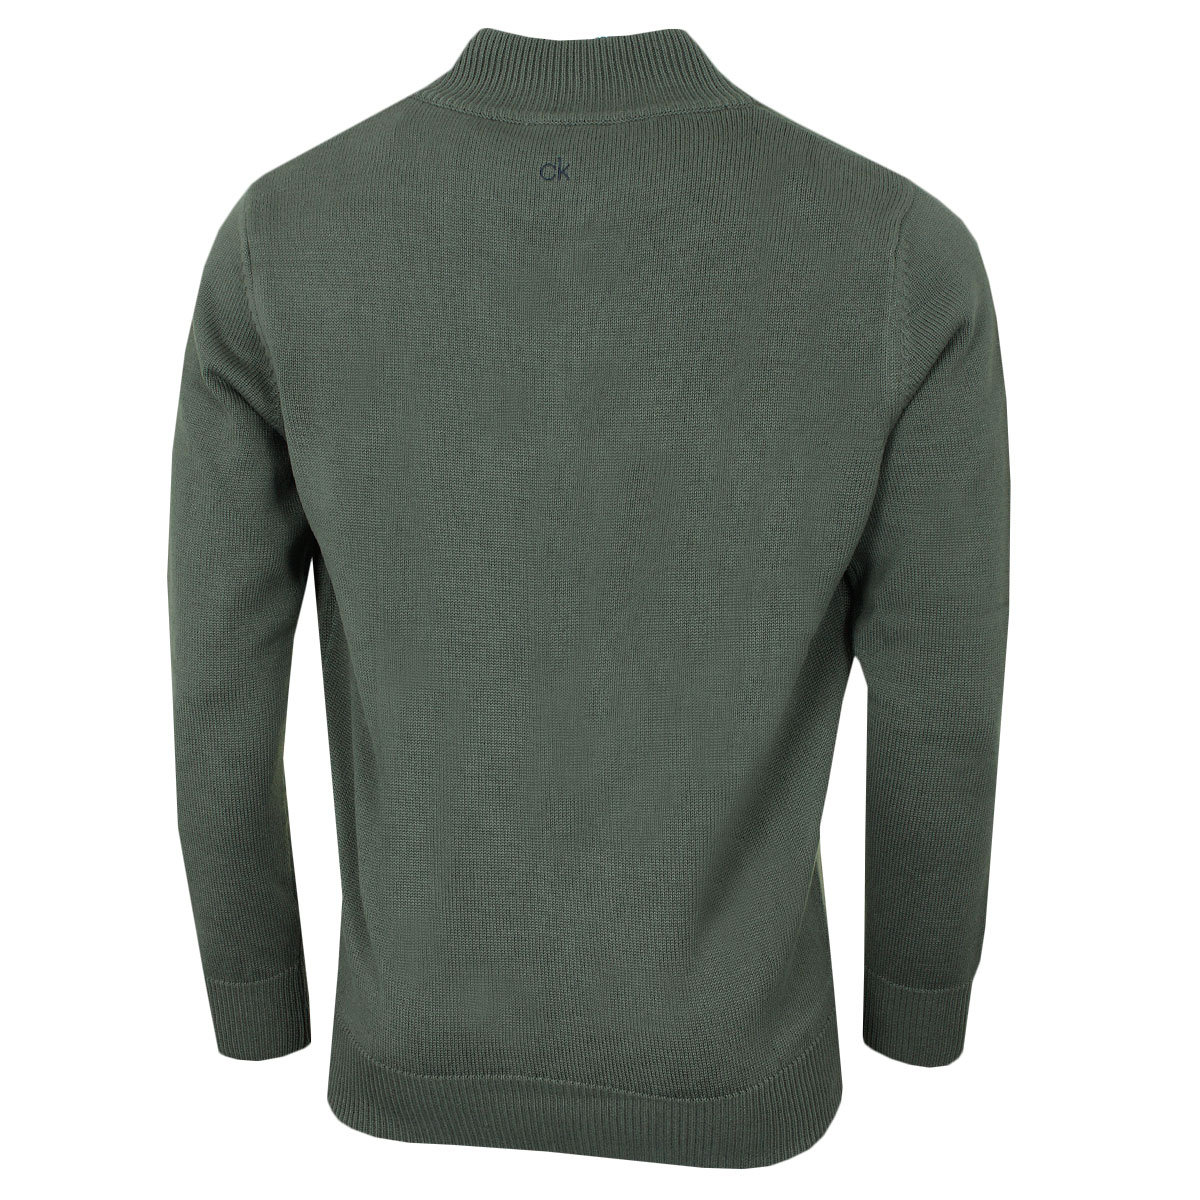 Calvin-Klein-Golf-Mens-2019-Chunky-Cotton-1-2-Zip-Golf-Top-Sweater-28-OFF-RRP thumbnail 34